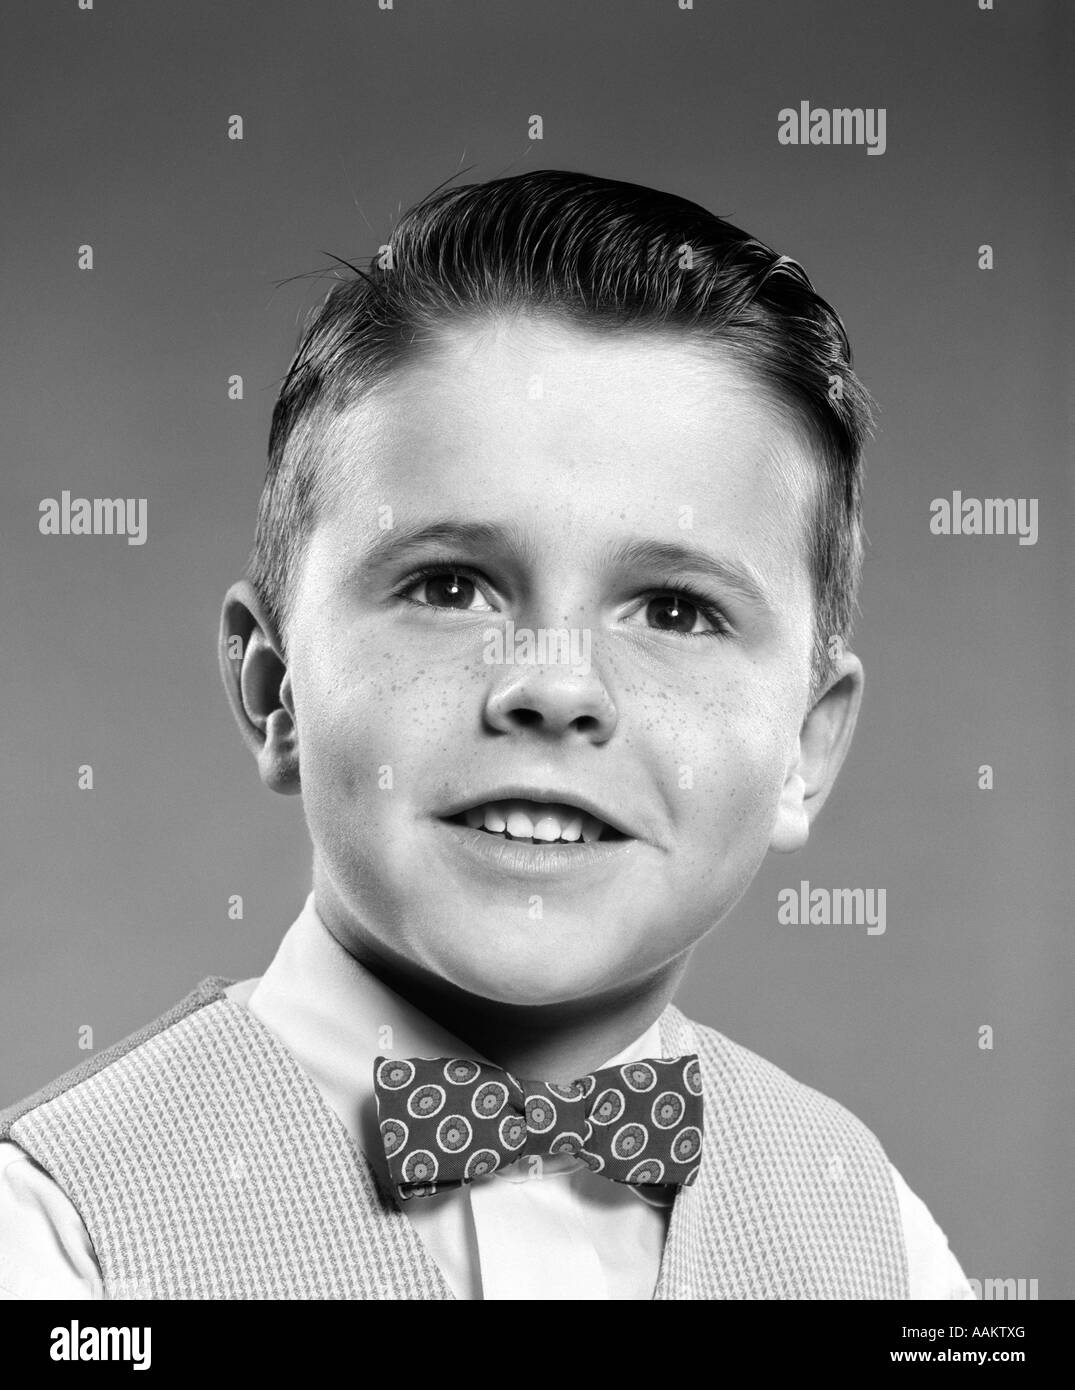 1950s SMILING PORTRAIT YOUNG MAN BOY WEARING CHECKERED VEST AND POLKA DOT BOW TIE - Stock Image